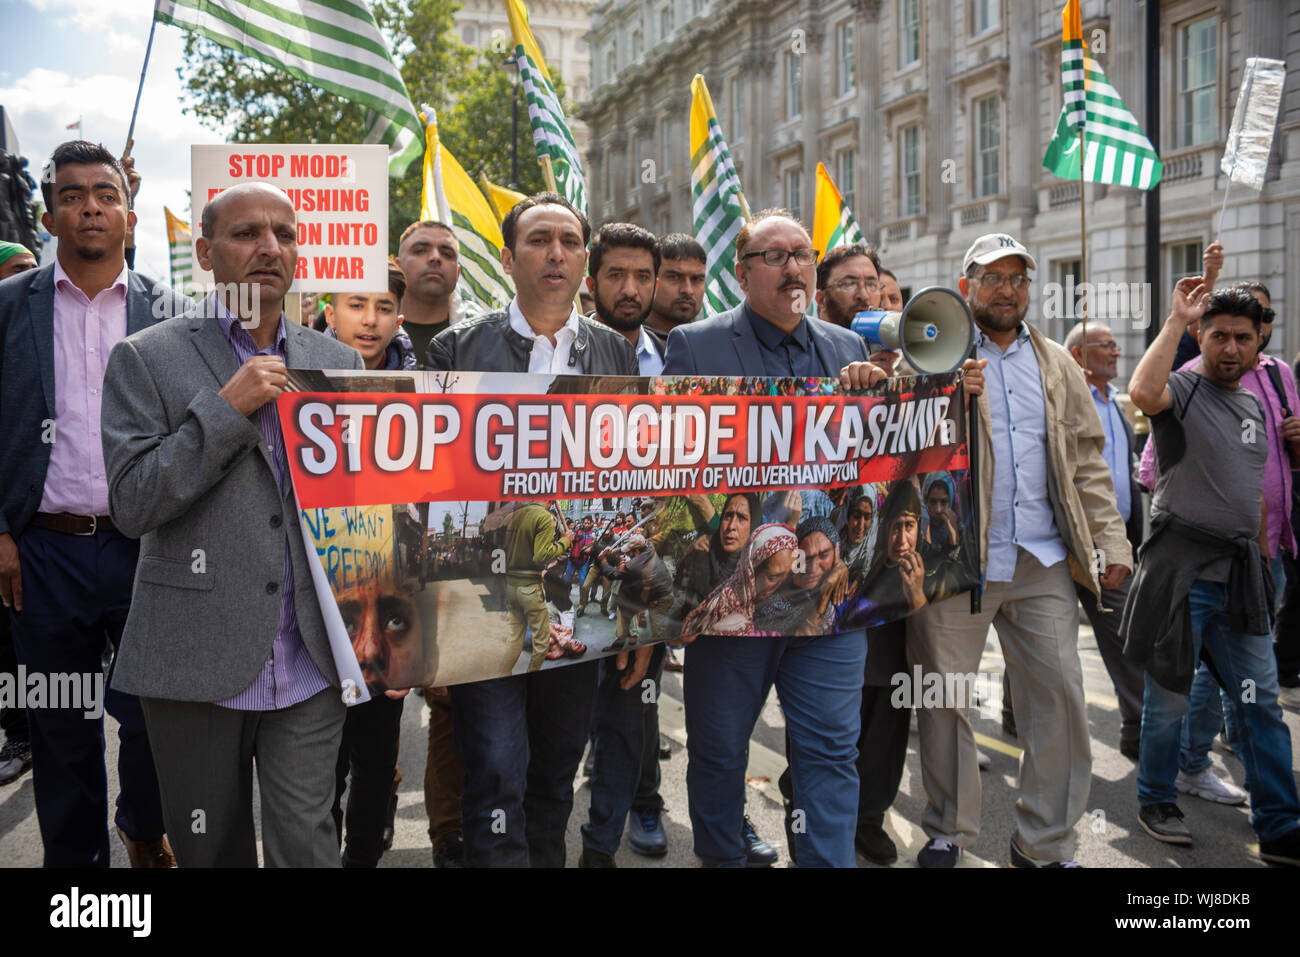 A protest is taking place in Westminster, London, UK demonstrating against the Indian occupation of Jammu and Kashmir, claiming that thousands have been killed and injured by the Indian armed forces. On 5th August Article 370 – which protected the rights of the population of the area – was revoked by the BJP government Stock Photo